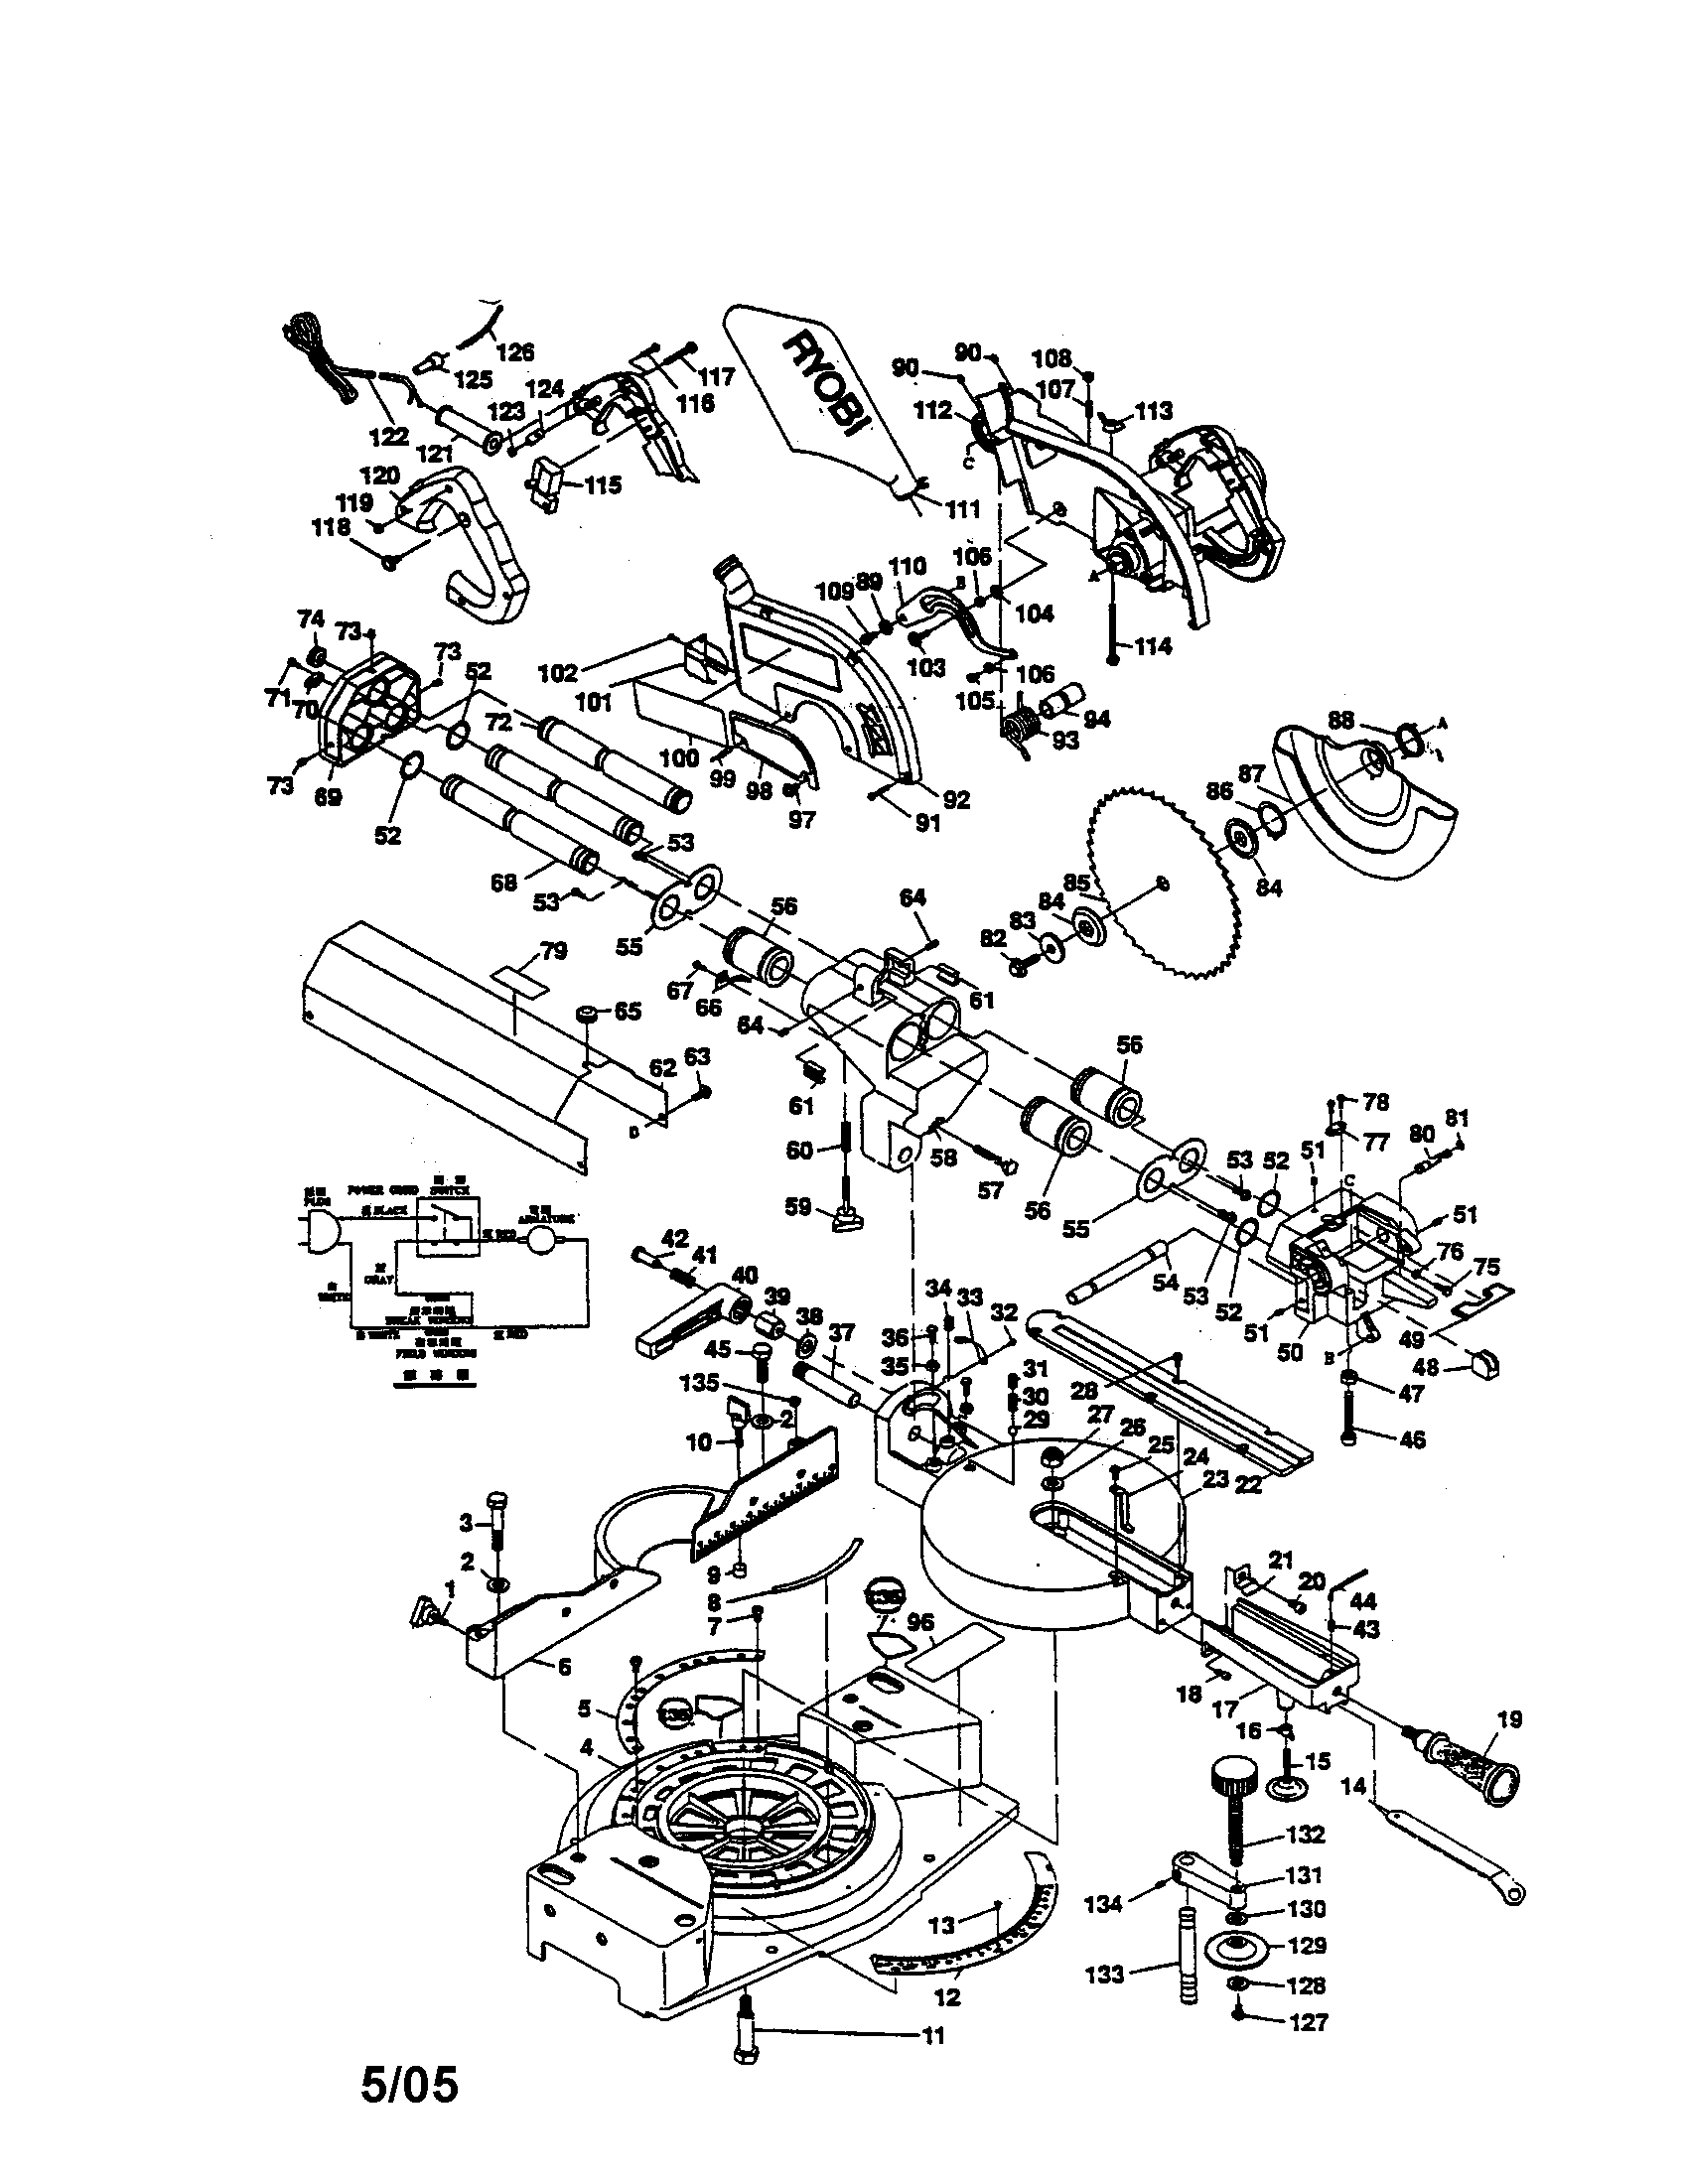 dewalt table saw parts diagram 2000 honda civic distributor wiring de walt miter compound